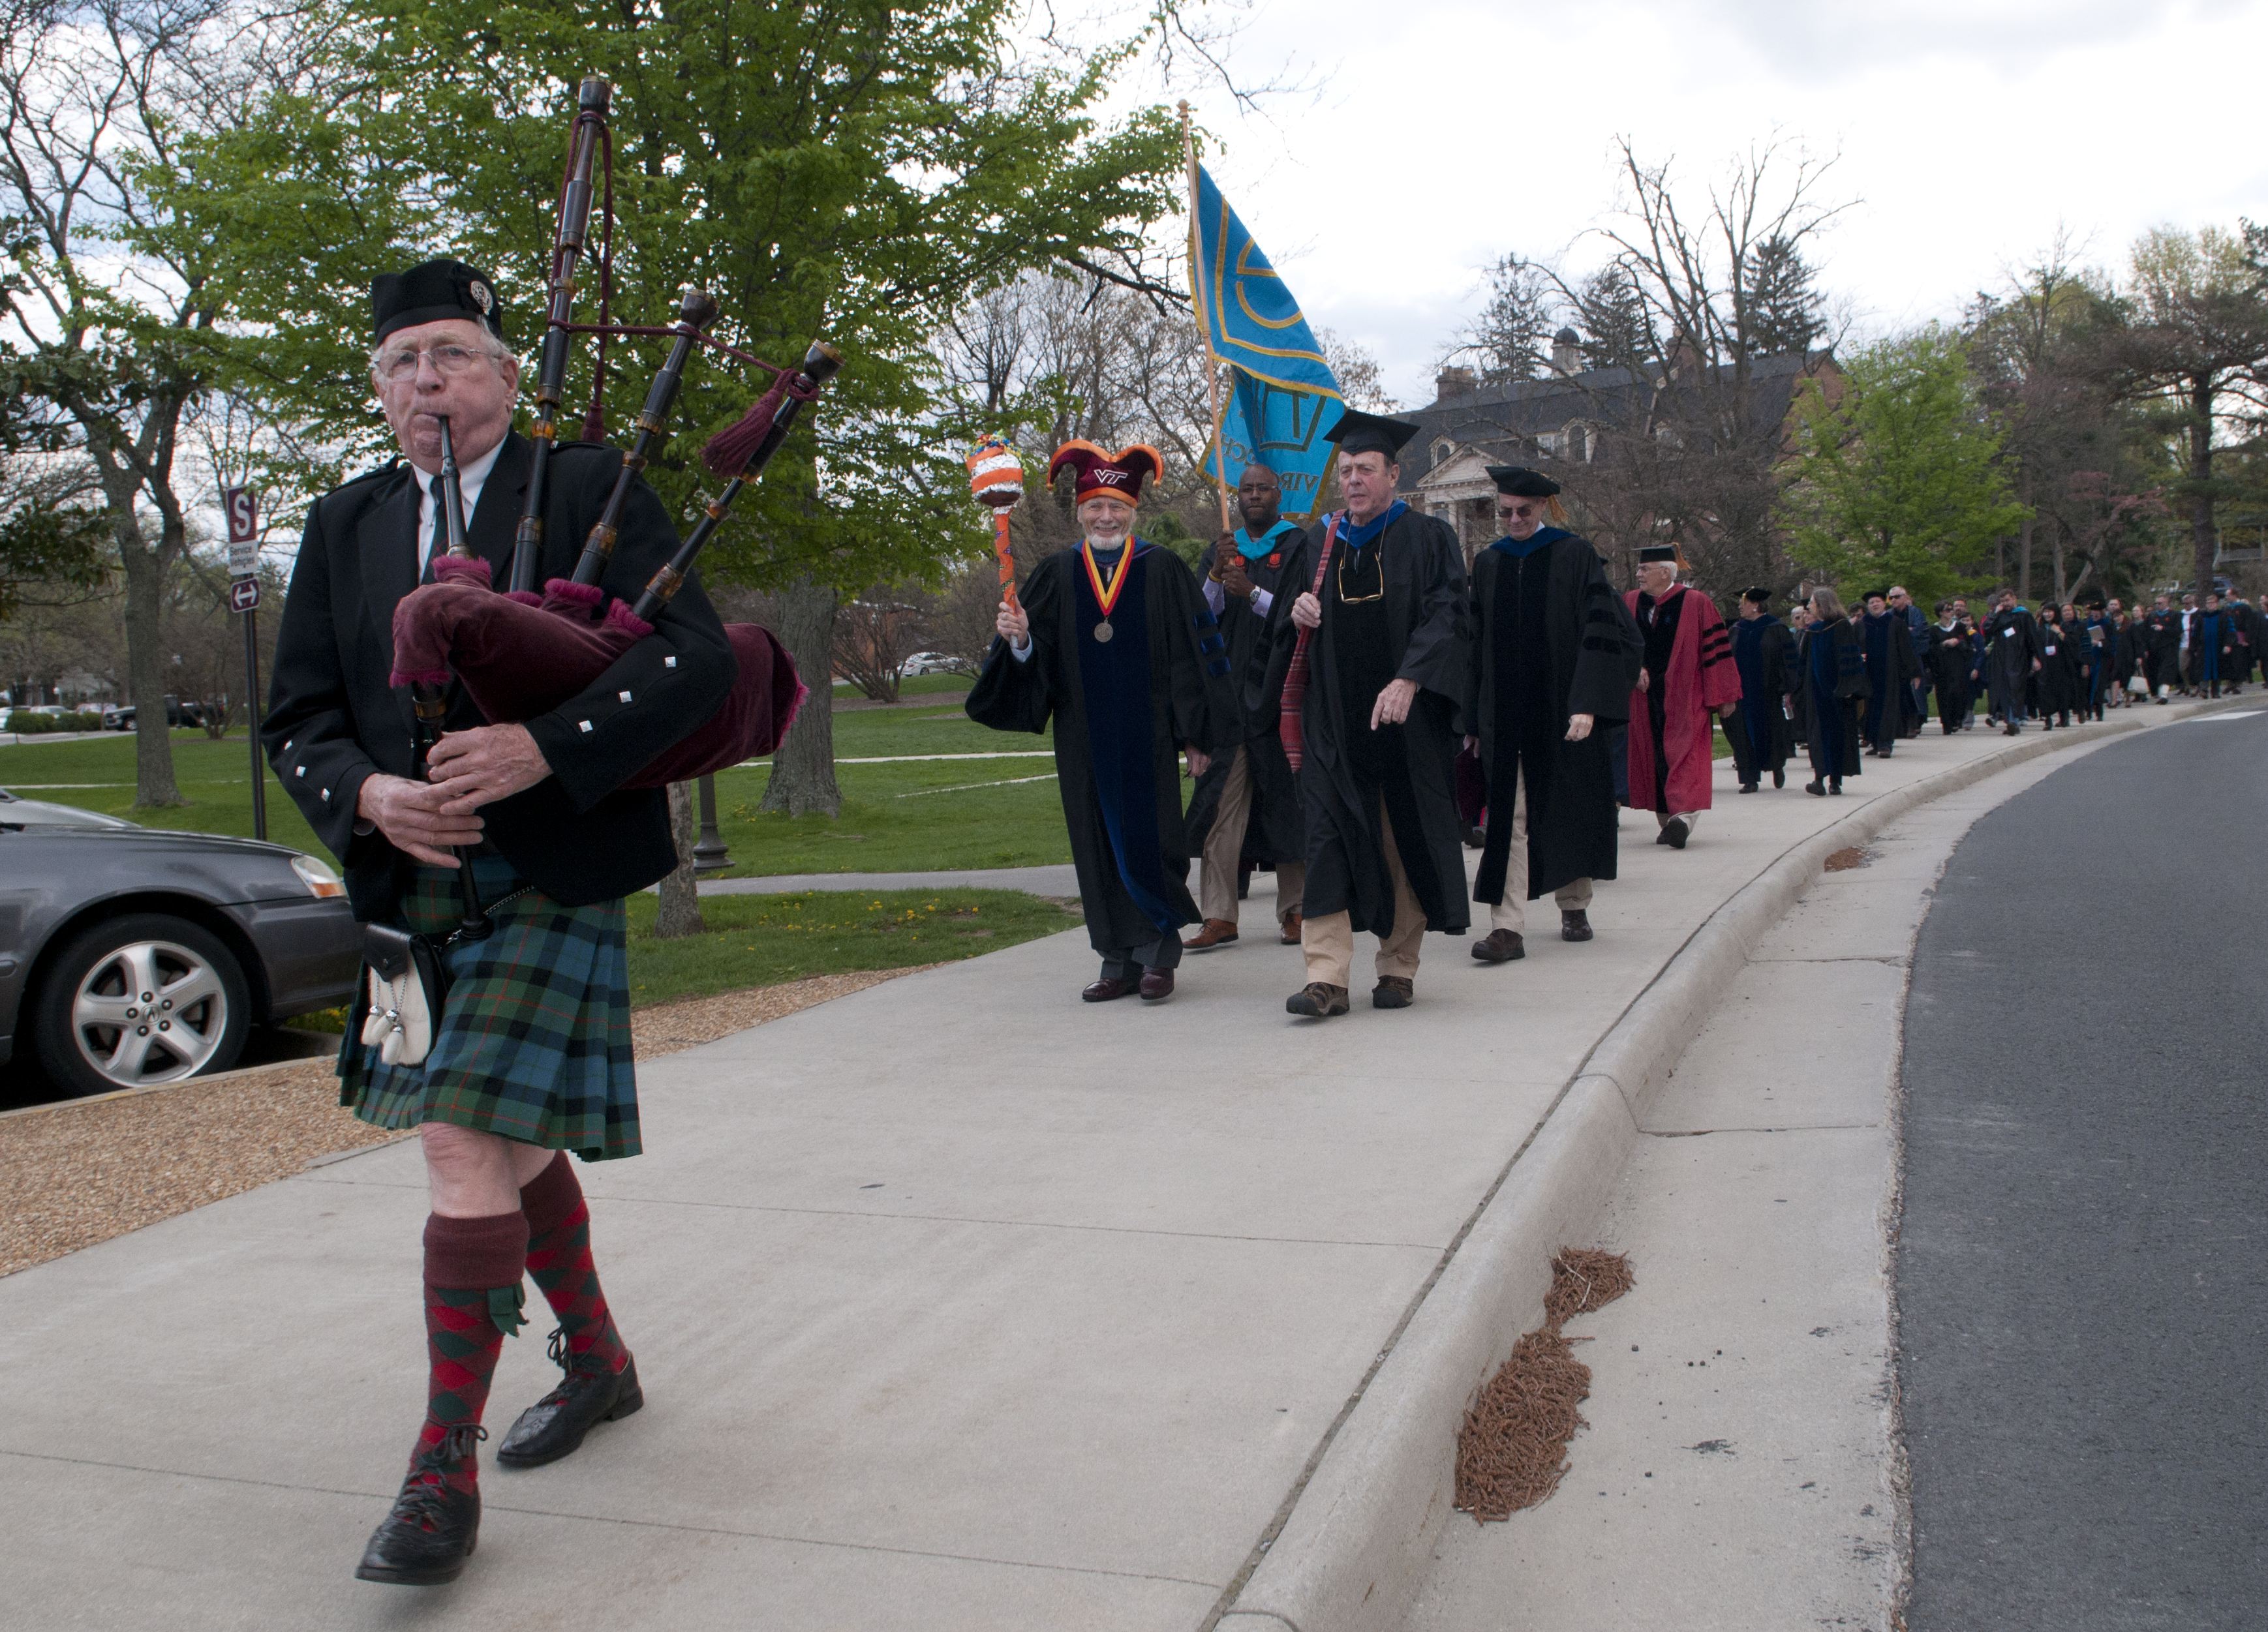 A procession of faculty and students in academic robes.